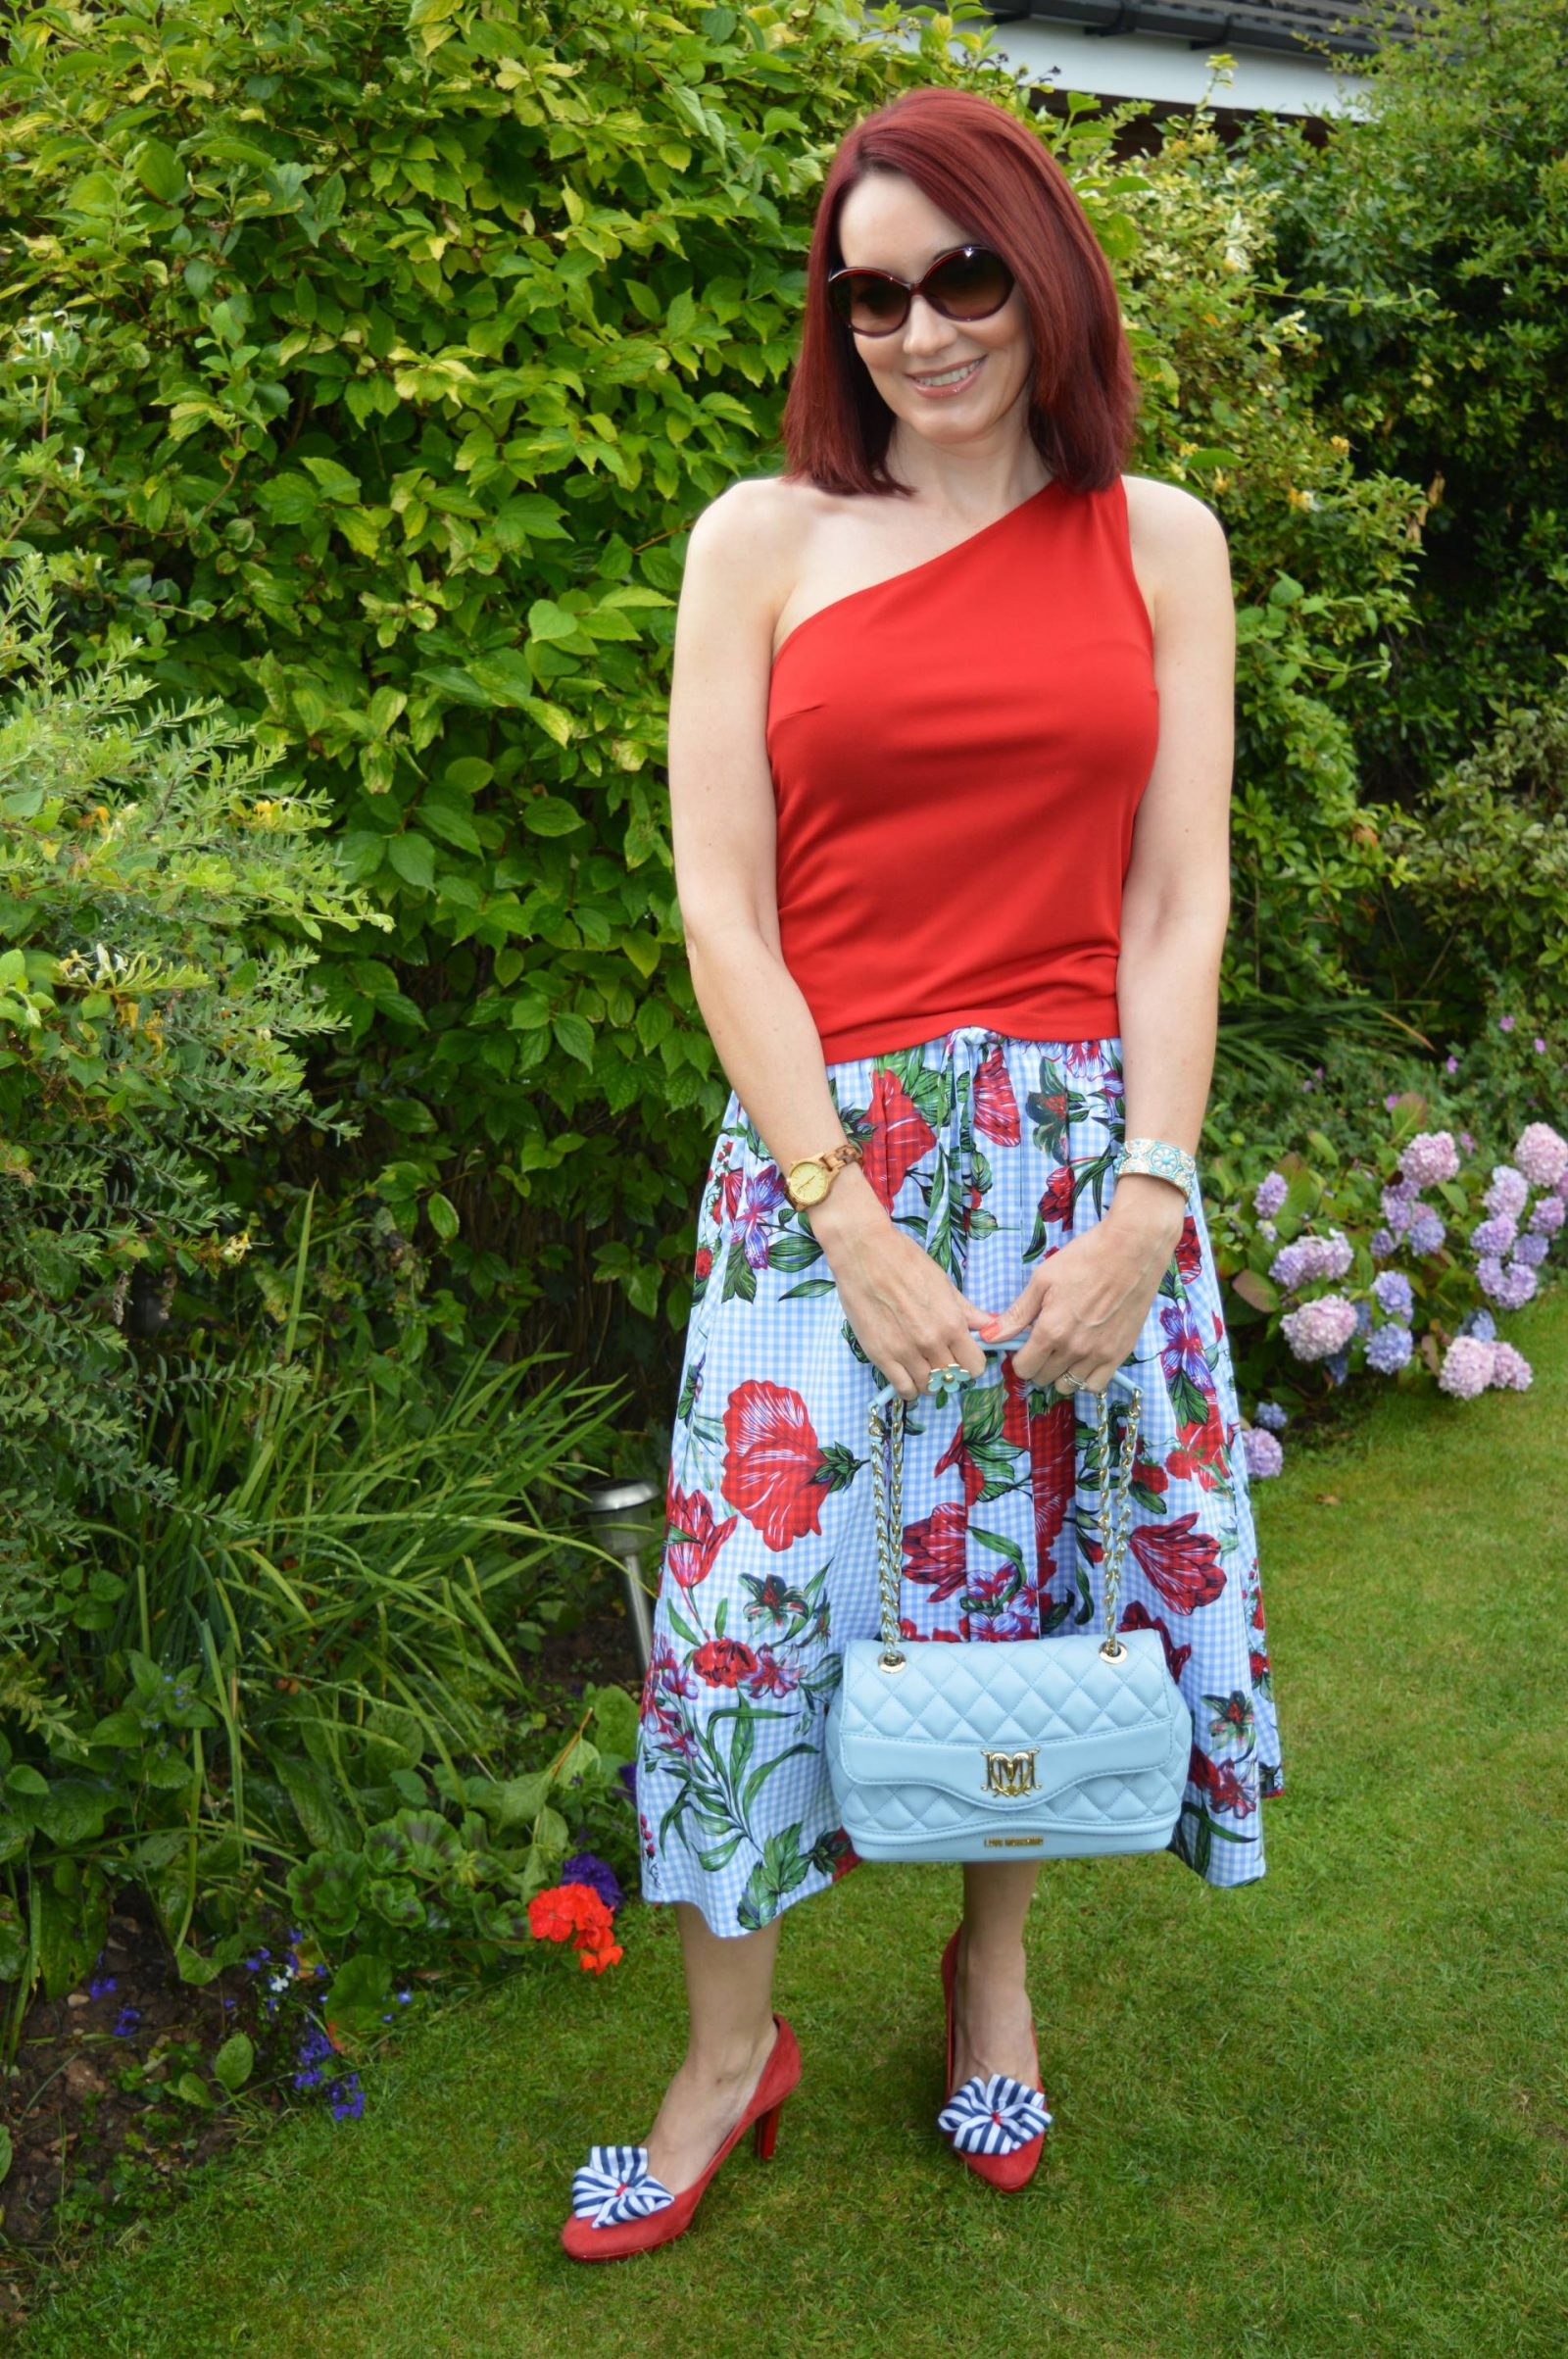 Red One Shoulder Top and Gingham Floral Skirt Zara gingham floral print skirt Love Moschino bag